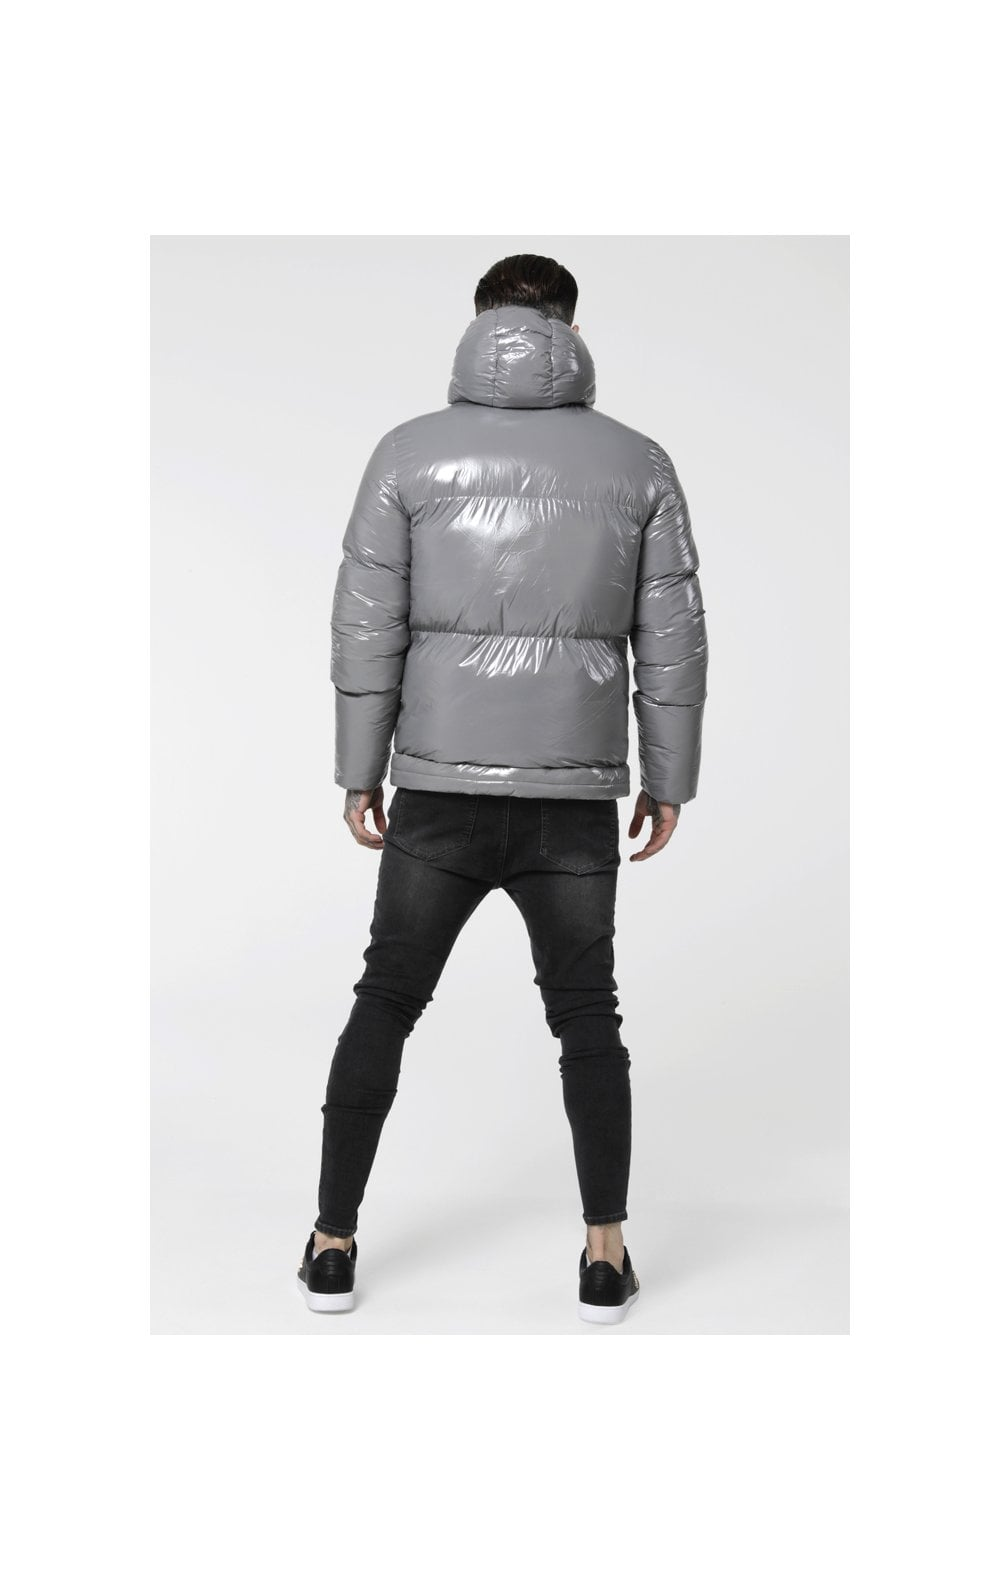 Load image into Gallery viewer, SikSilk Driven Jacket – Grey (5)